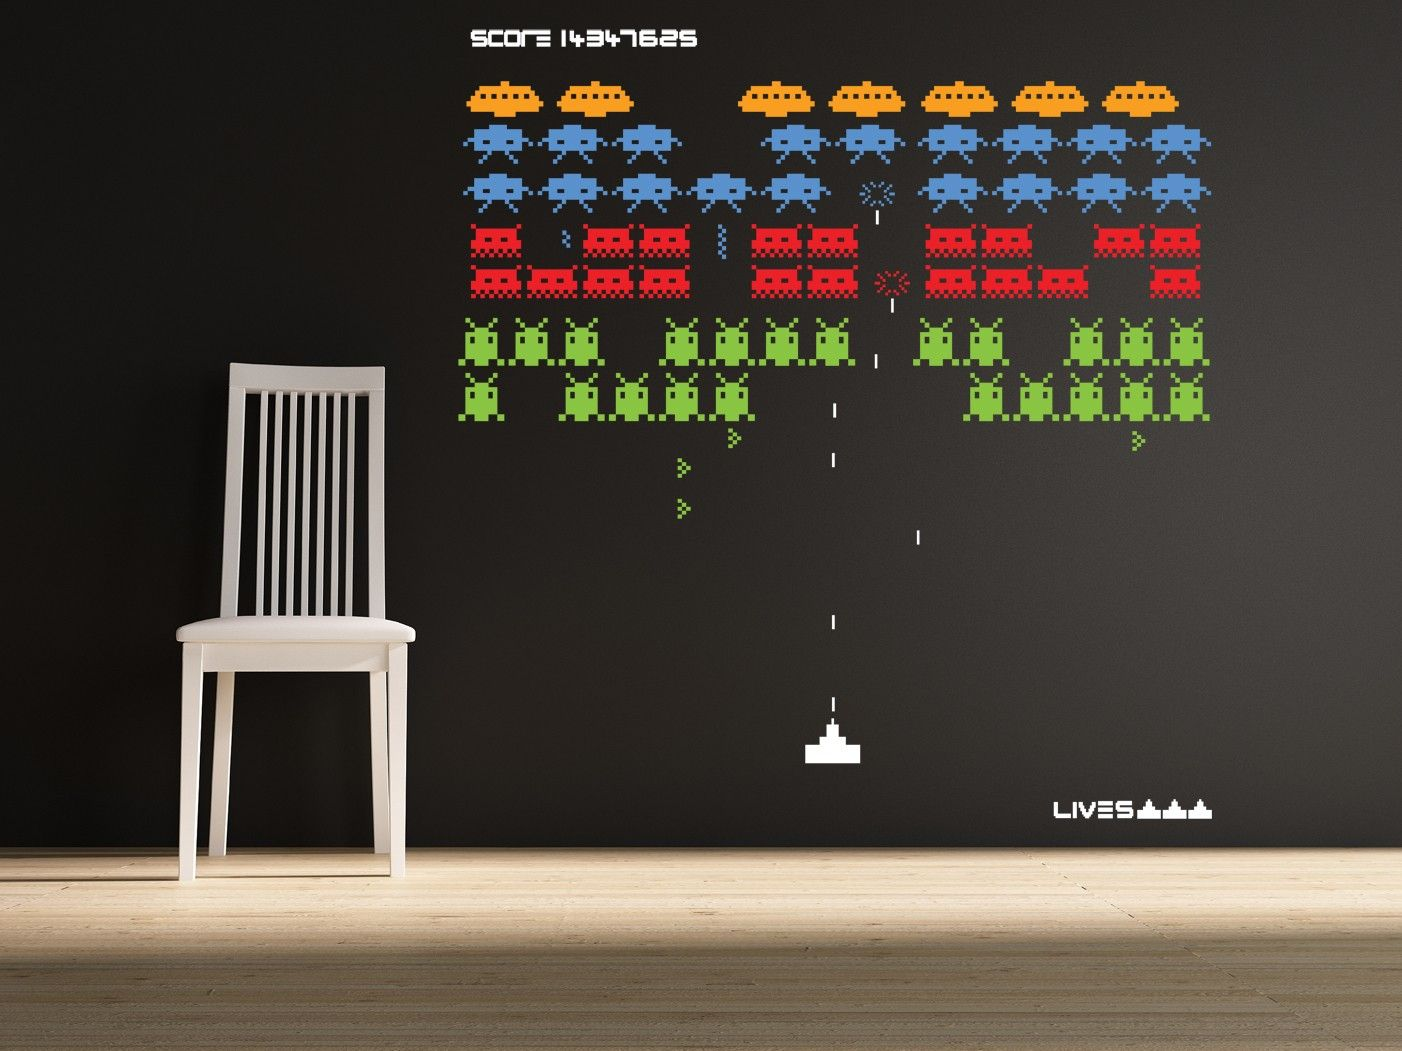 Space invaders wallpaper house ideas pinterest arcade games kid and nostalgia - Space invader wall stickers ...